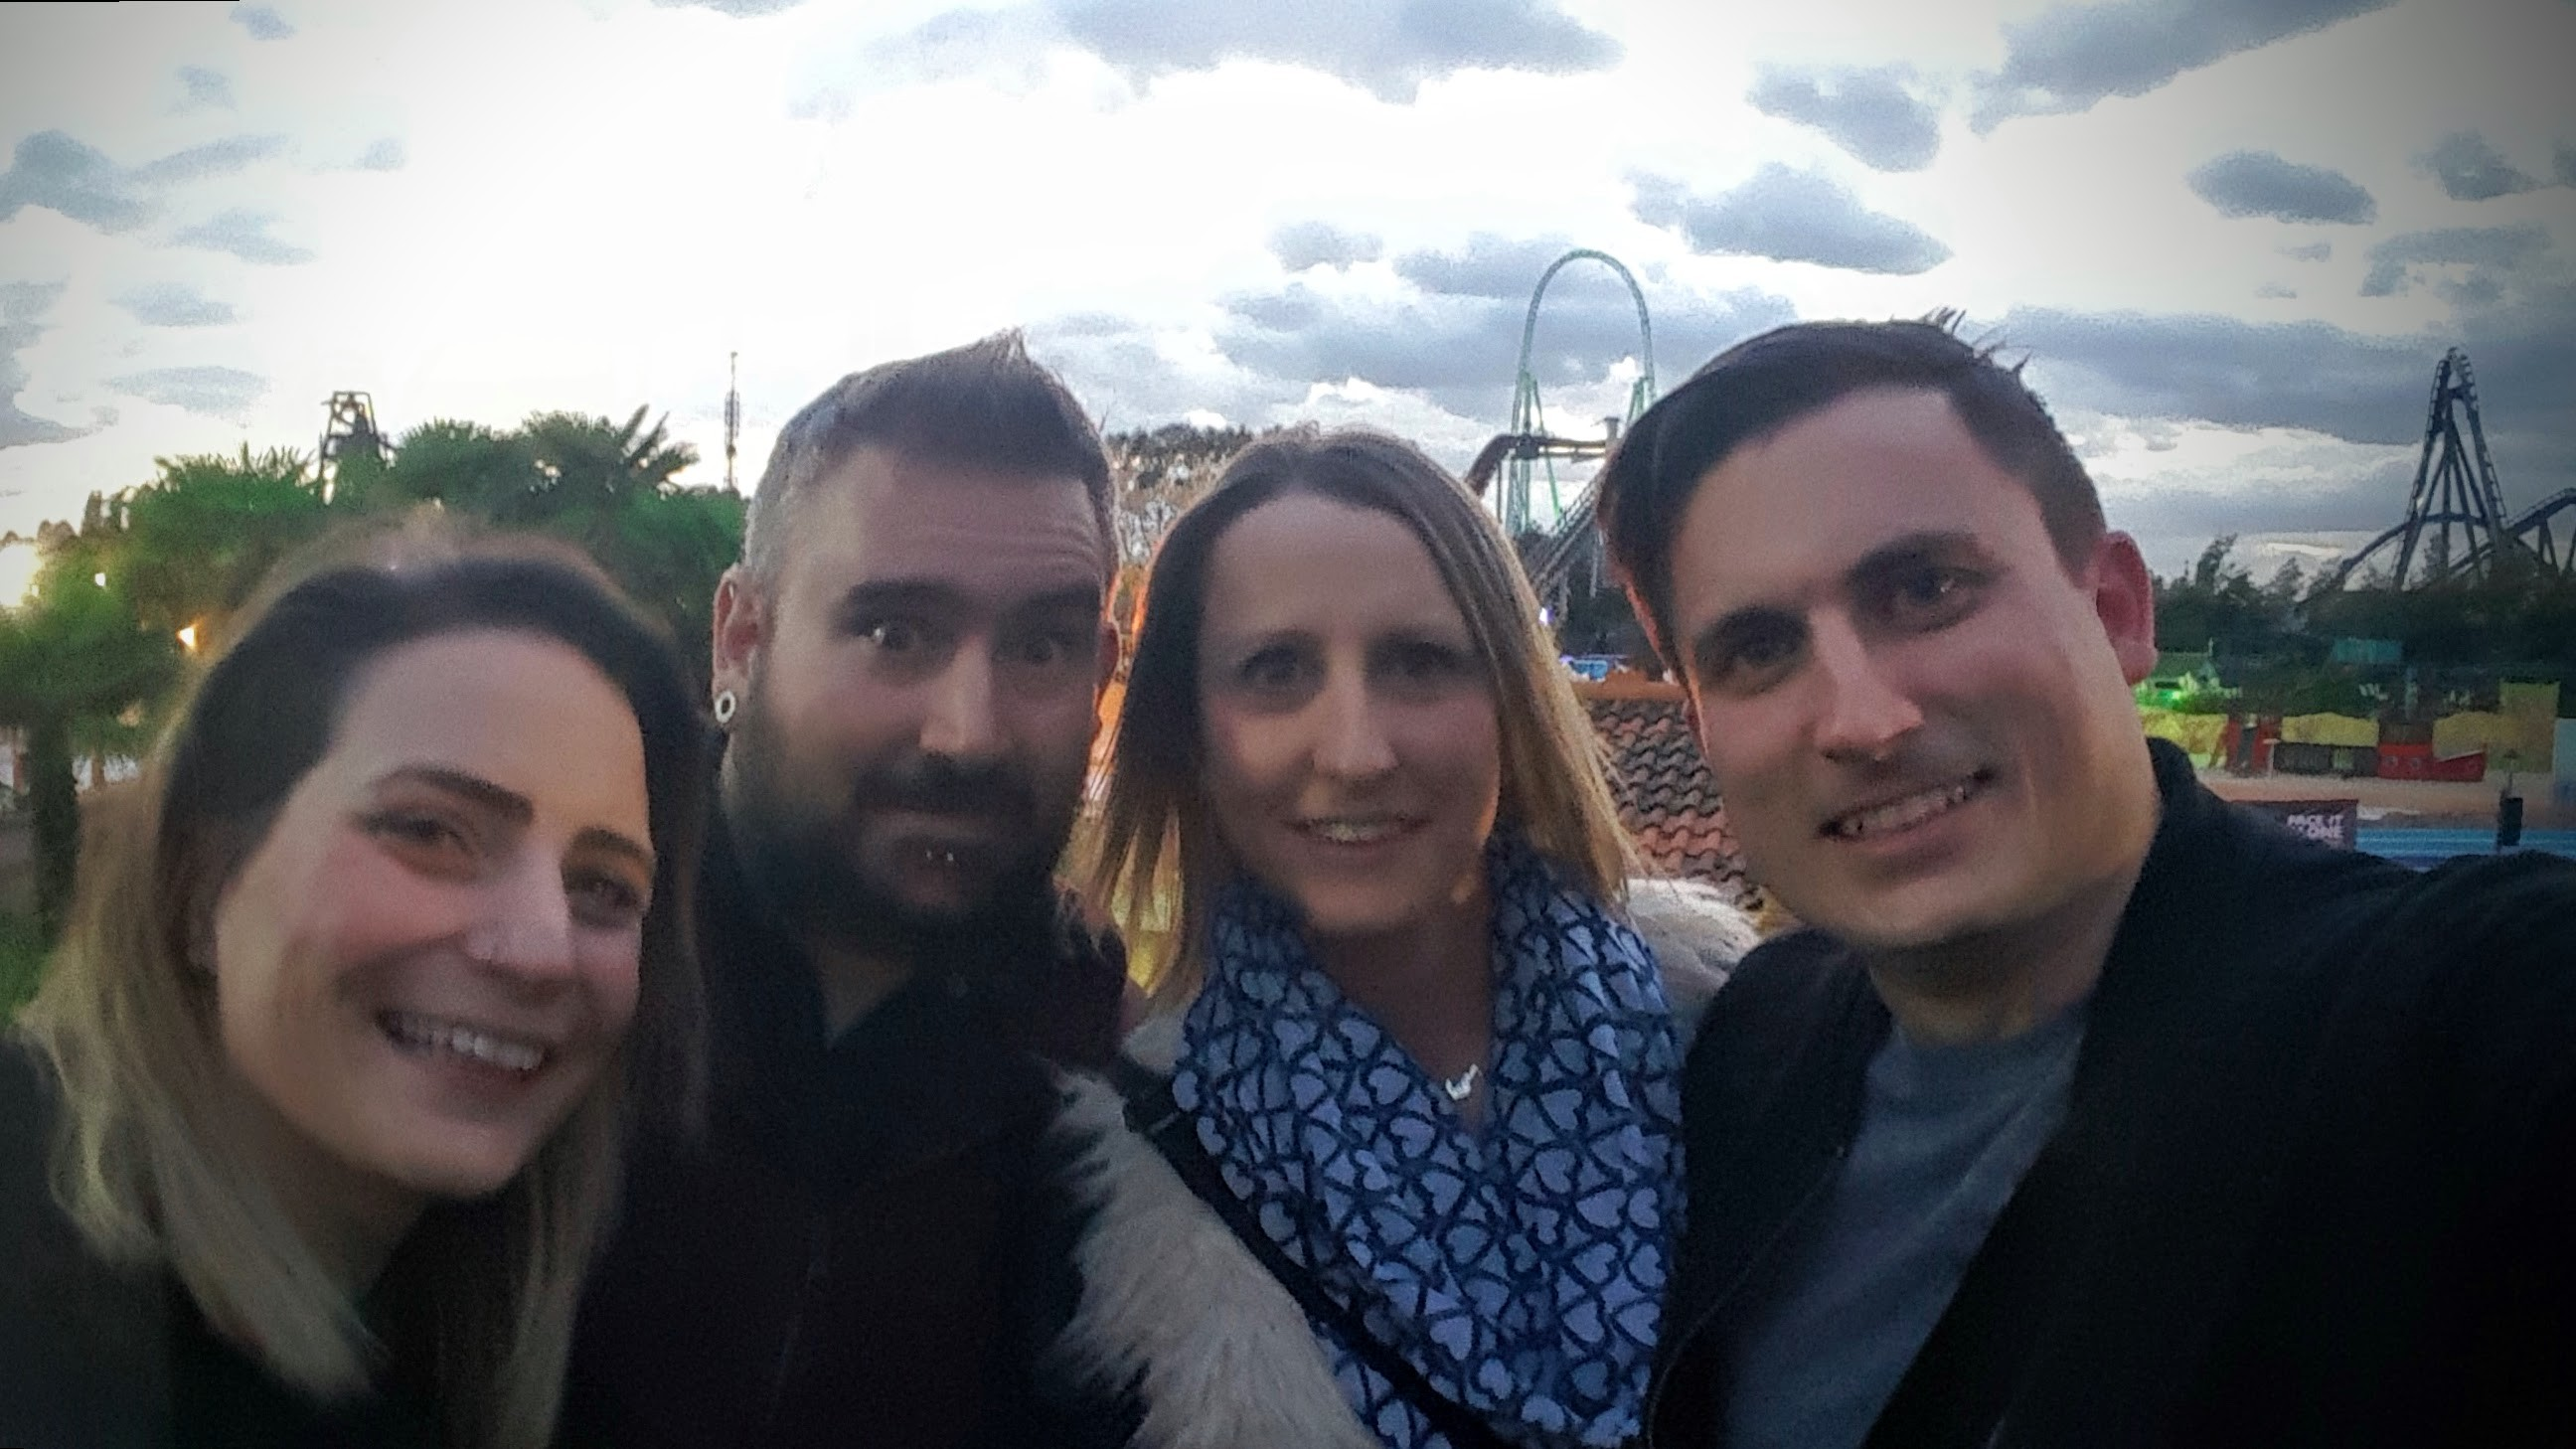 4 brave adventurers, ready to take on Thorpe Park Fright Nights 2016